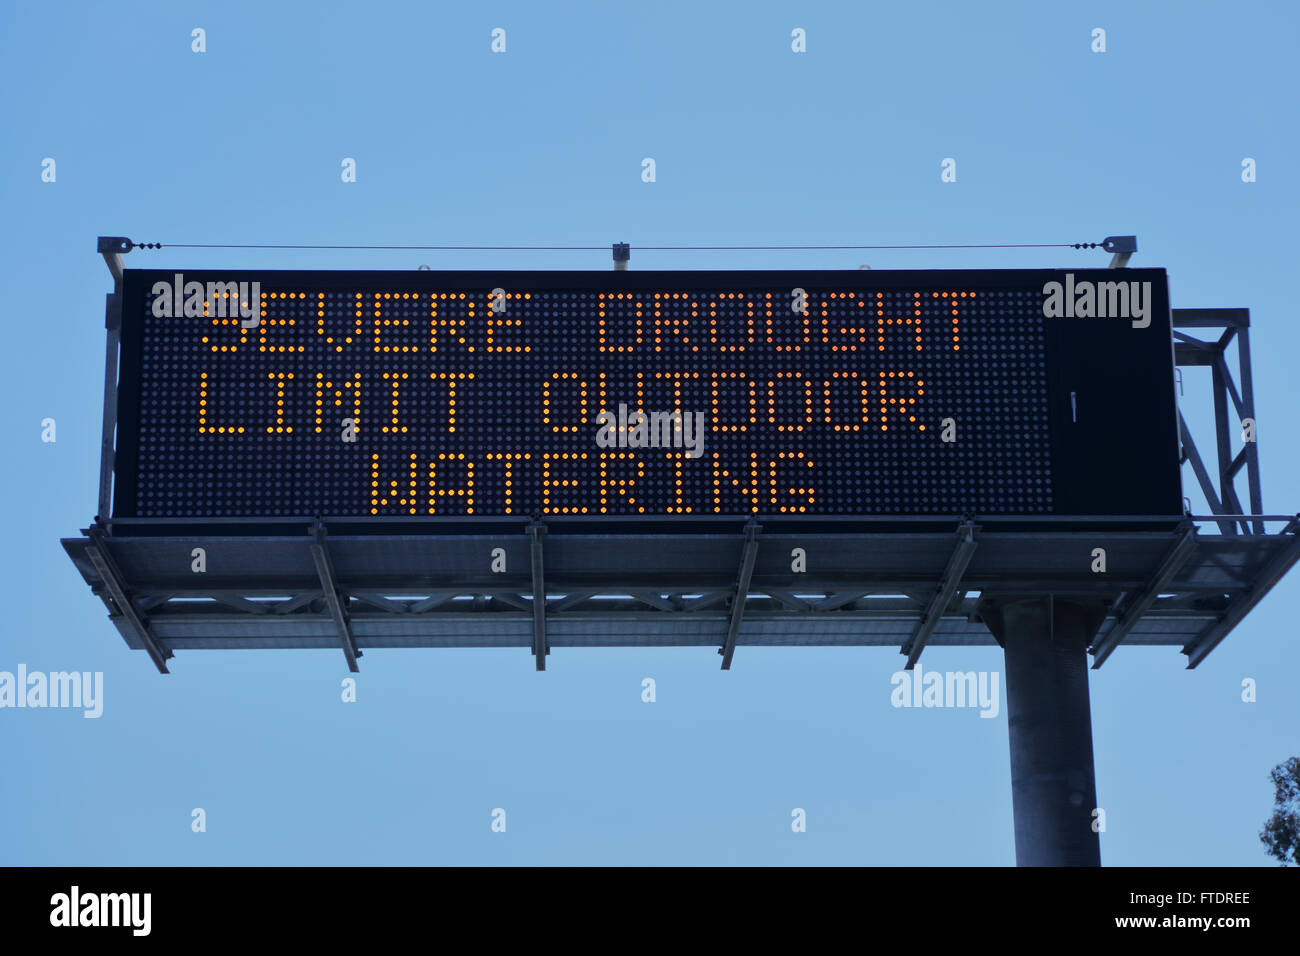 DROUGHT in Southern California - limit watering - Stock Image